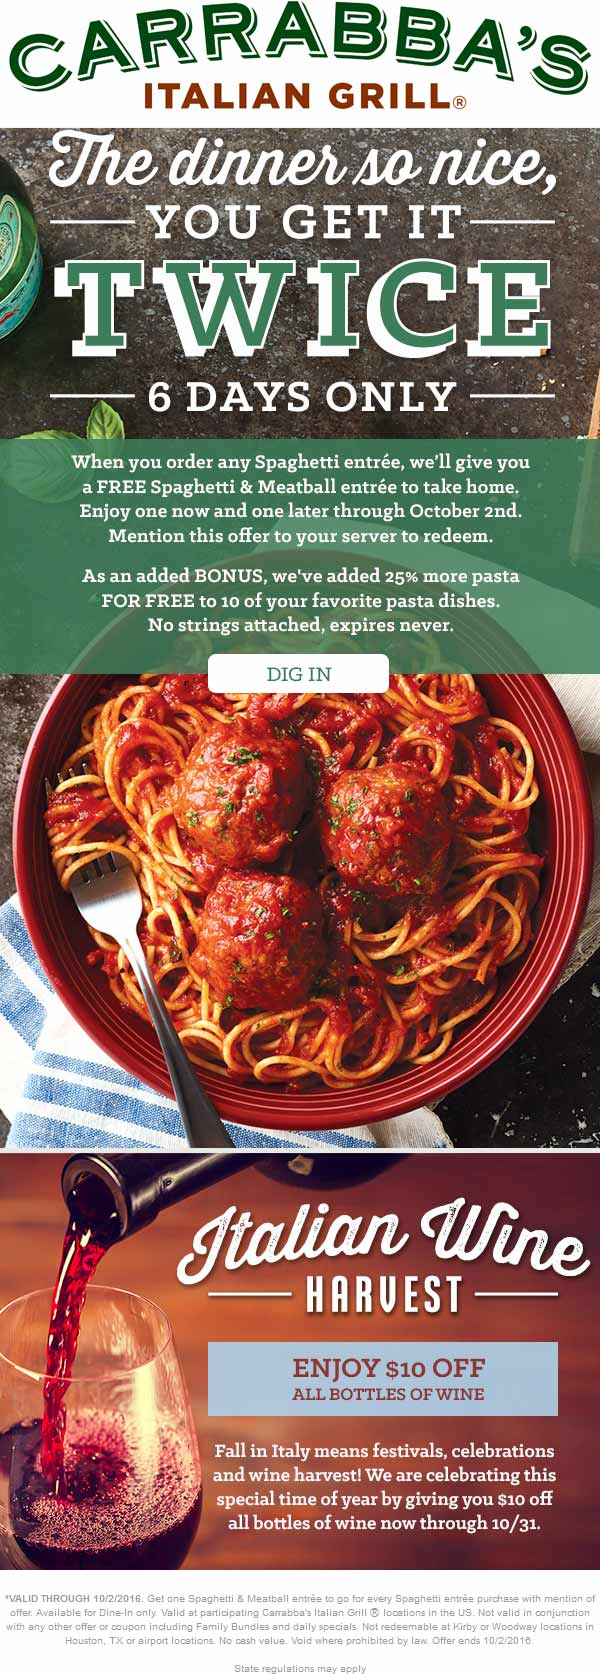 Carrabbas Coupon January 2018 Second spaghetti & meatballs free as takeout at Carrabbas restaurants